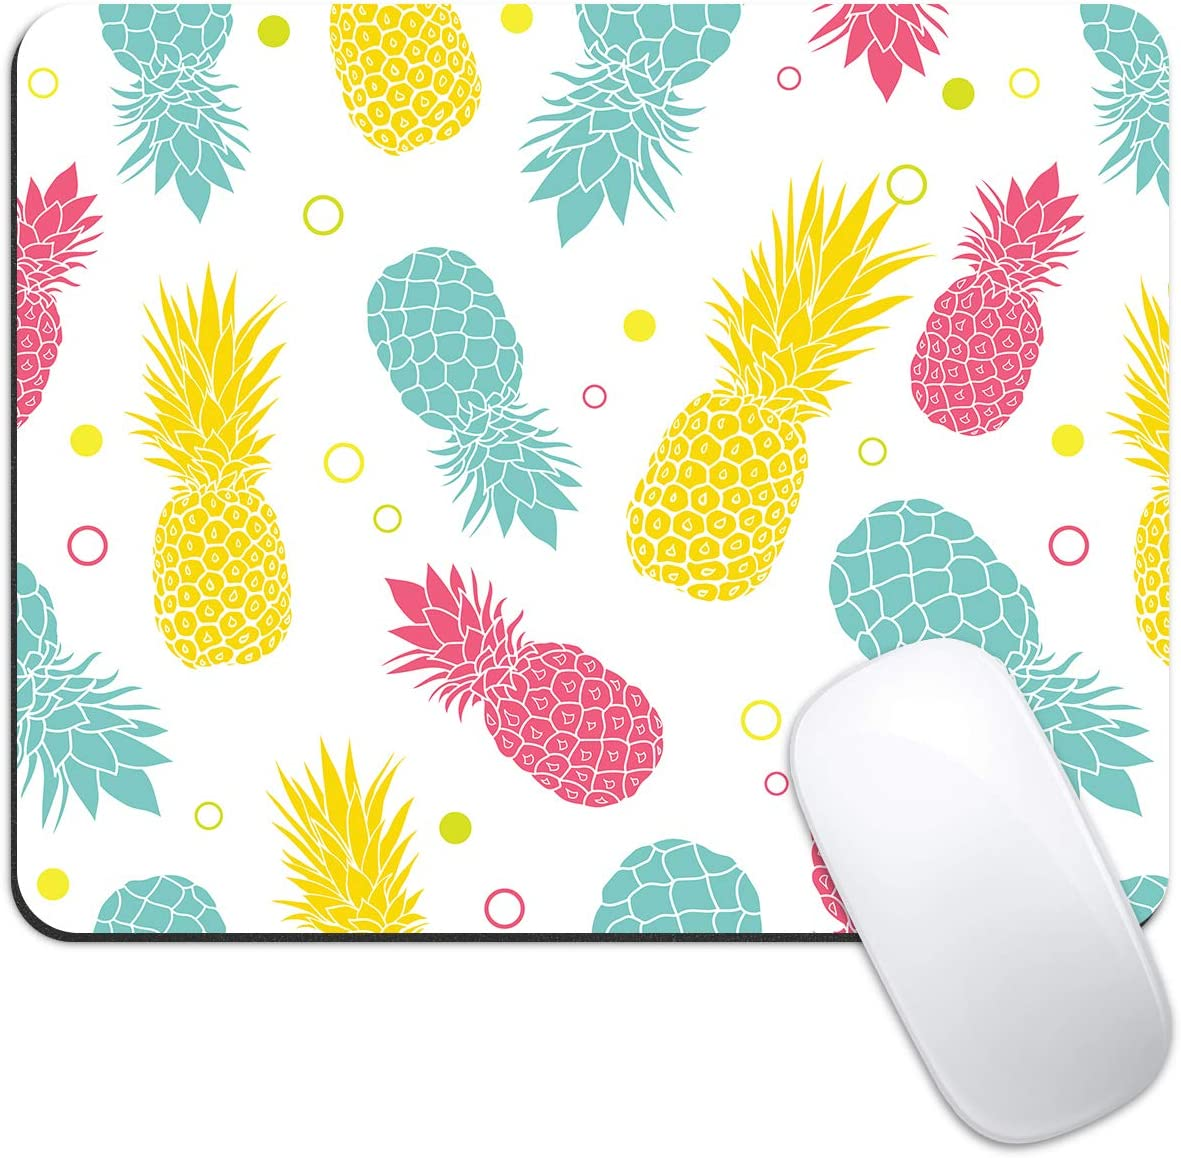 Dynippy Mouse Pad Gaming Mouse Pads Non-Slip Rubber Base Mousepad Square Mouse Mat for Desktops Computer Laptops (Colorful Pineapple)